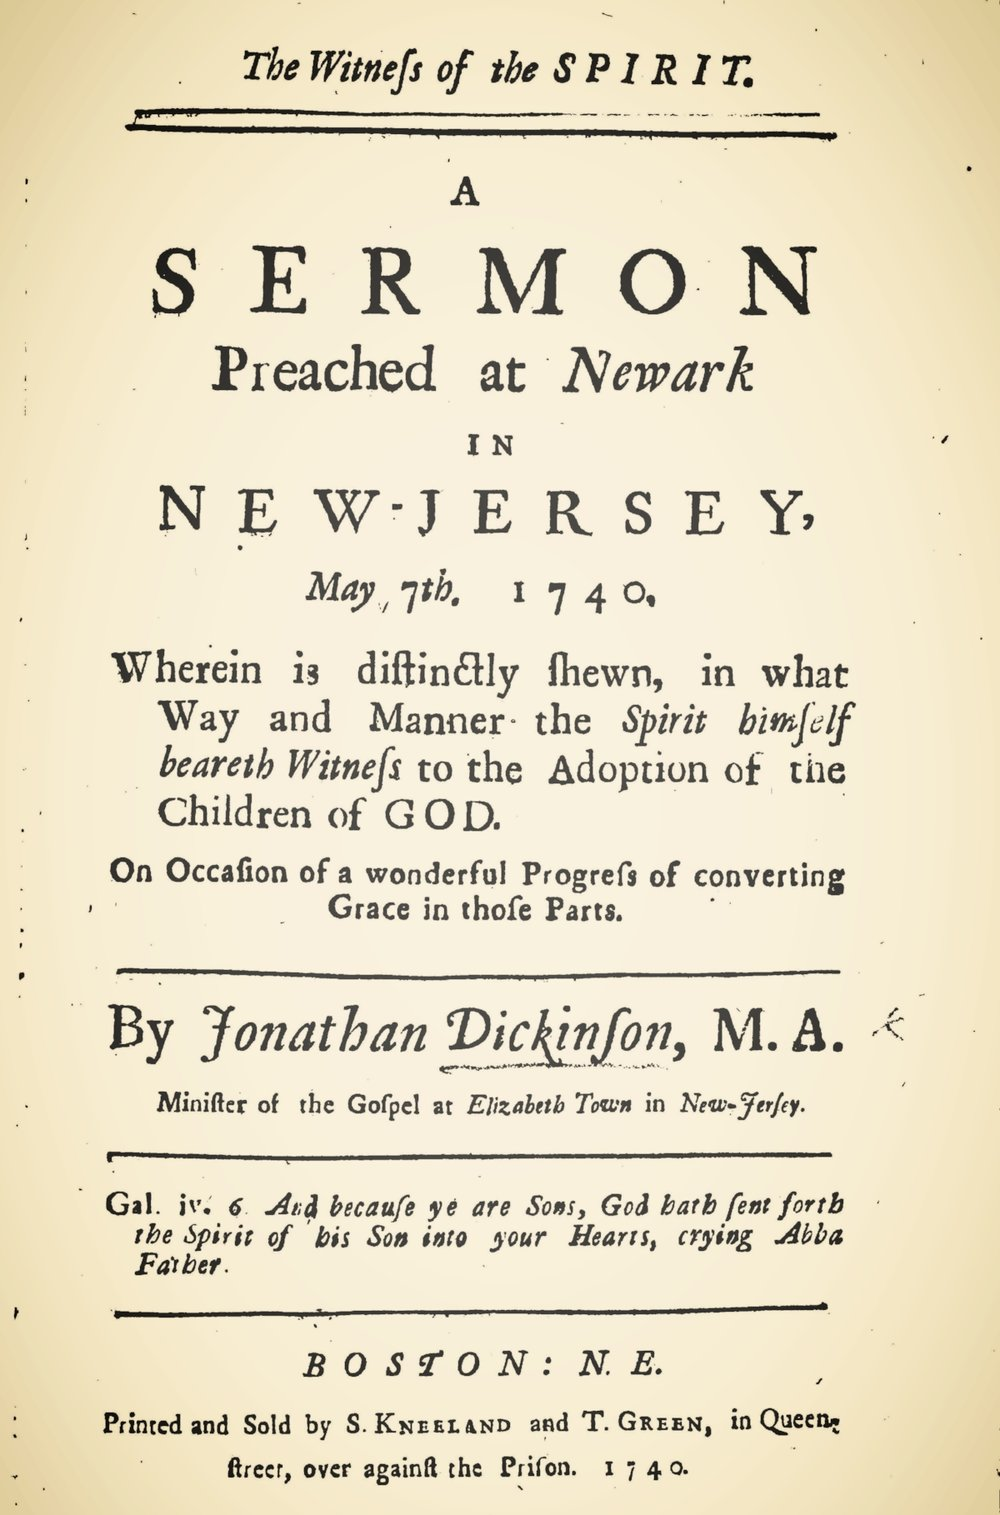 Dickinson, Jonathan, The Witness of the Spirit Title Page.jpg